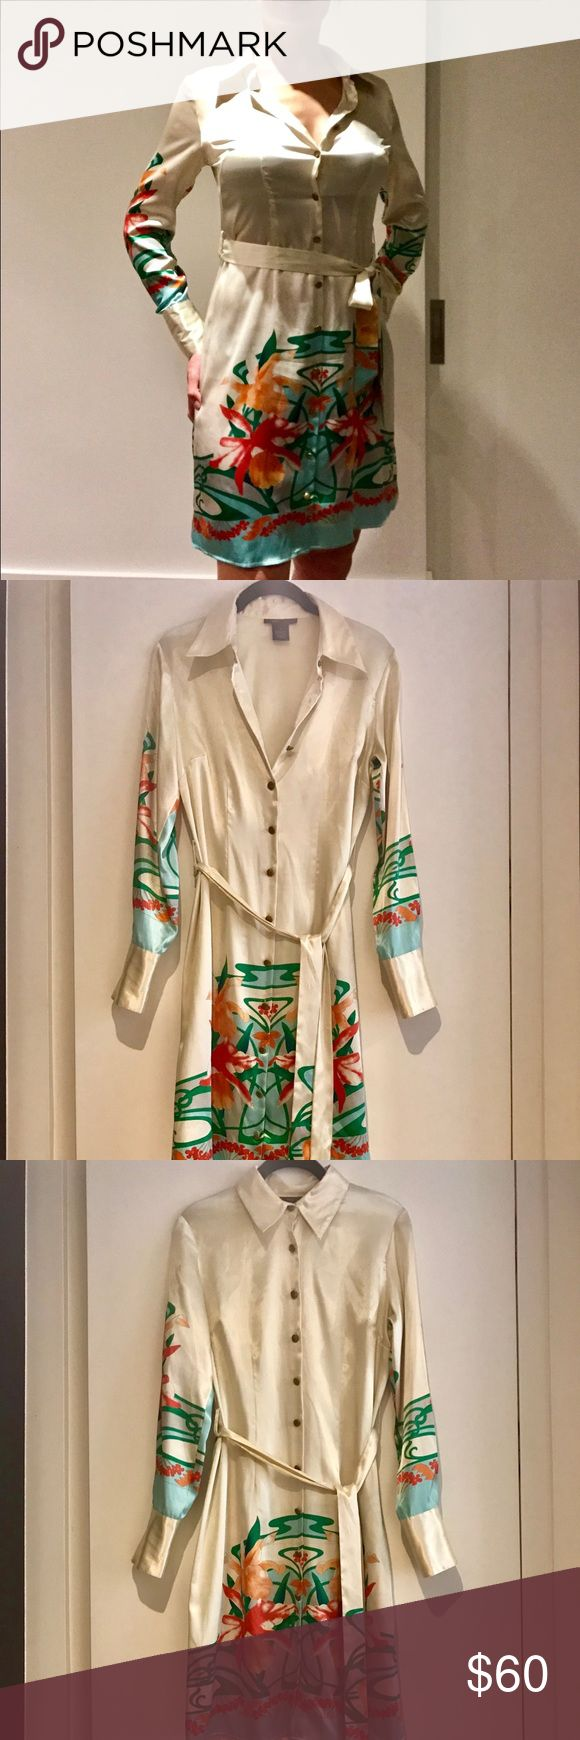 BCBGMAXAZRIA Belted Shirt Dress Effortless to transition from workweek to weekend, this long-sleeve shirt dress is designed with a eye-catching flower pattern and an attached adjustable waist-tie.  Condition: Like new! Worn once BCBGMaxAzria Dresses Long Sleeve